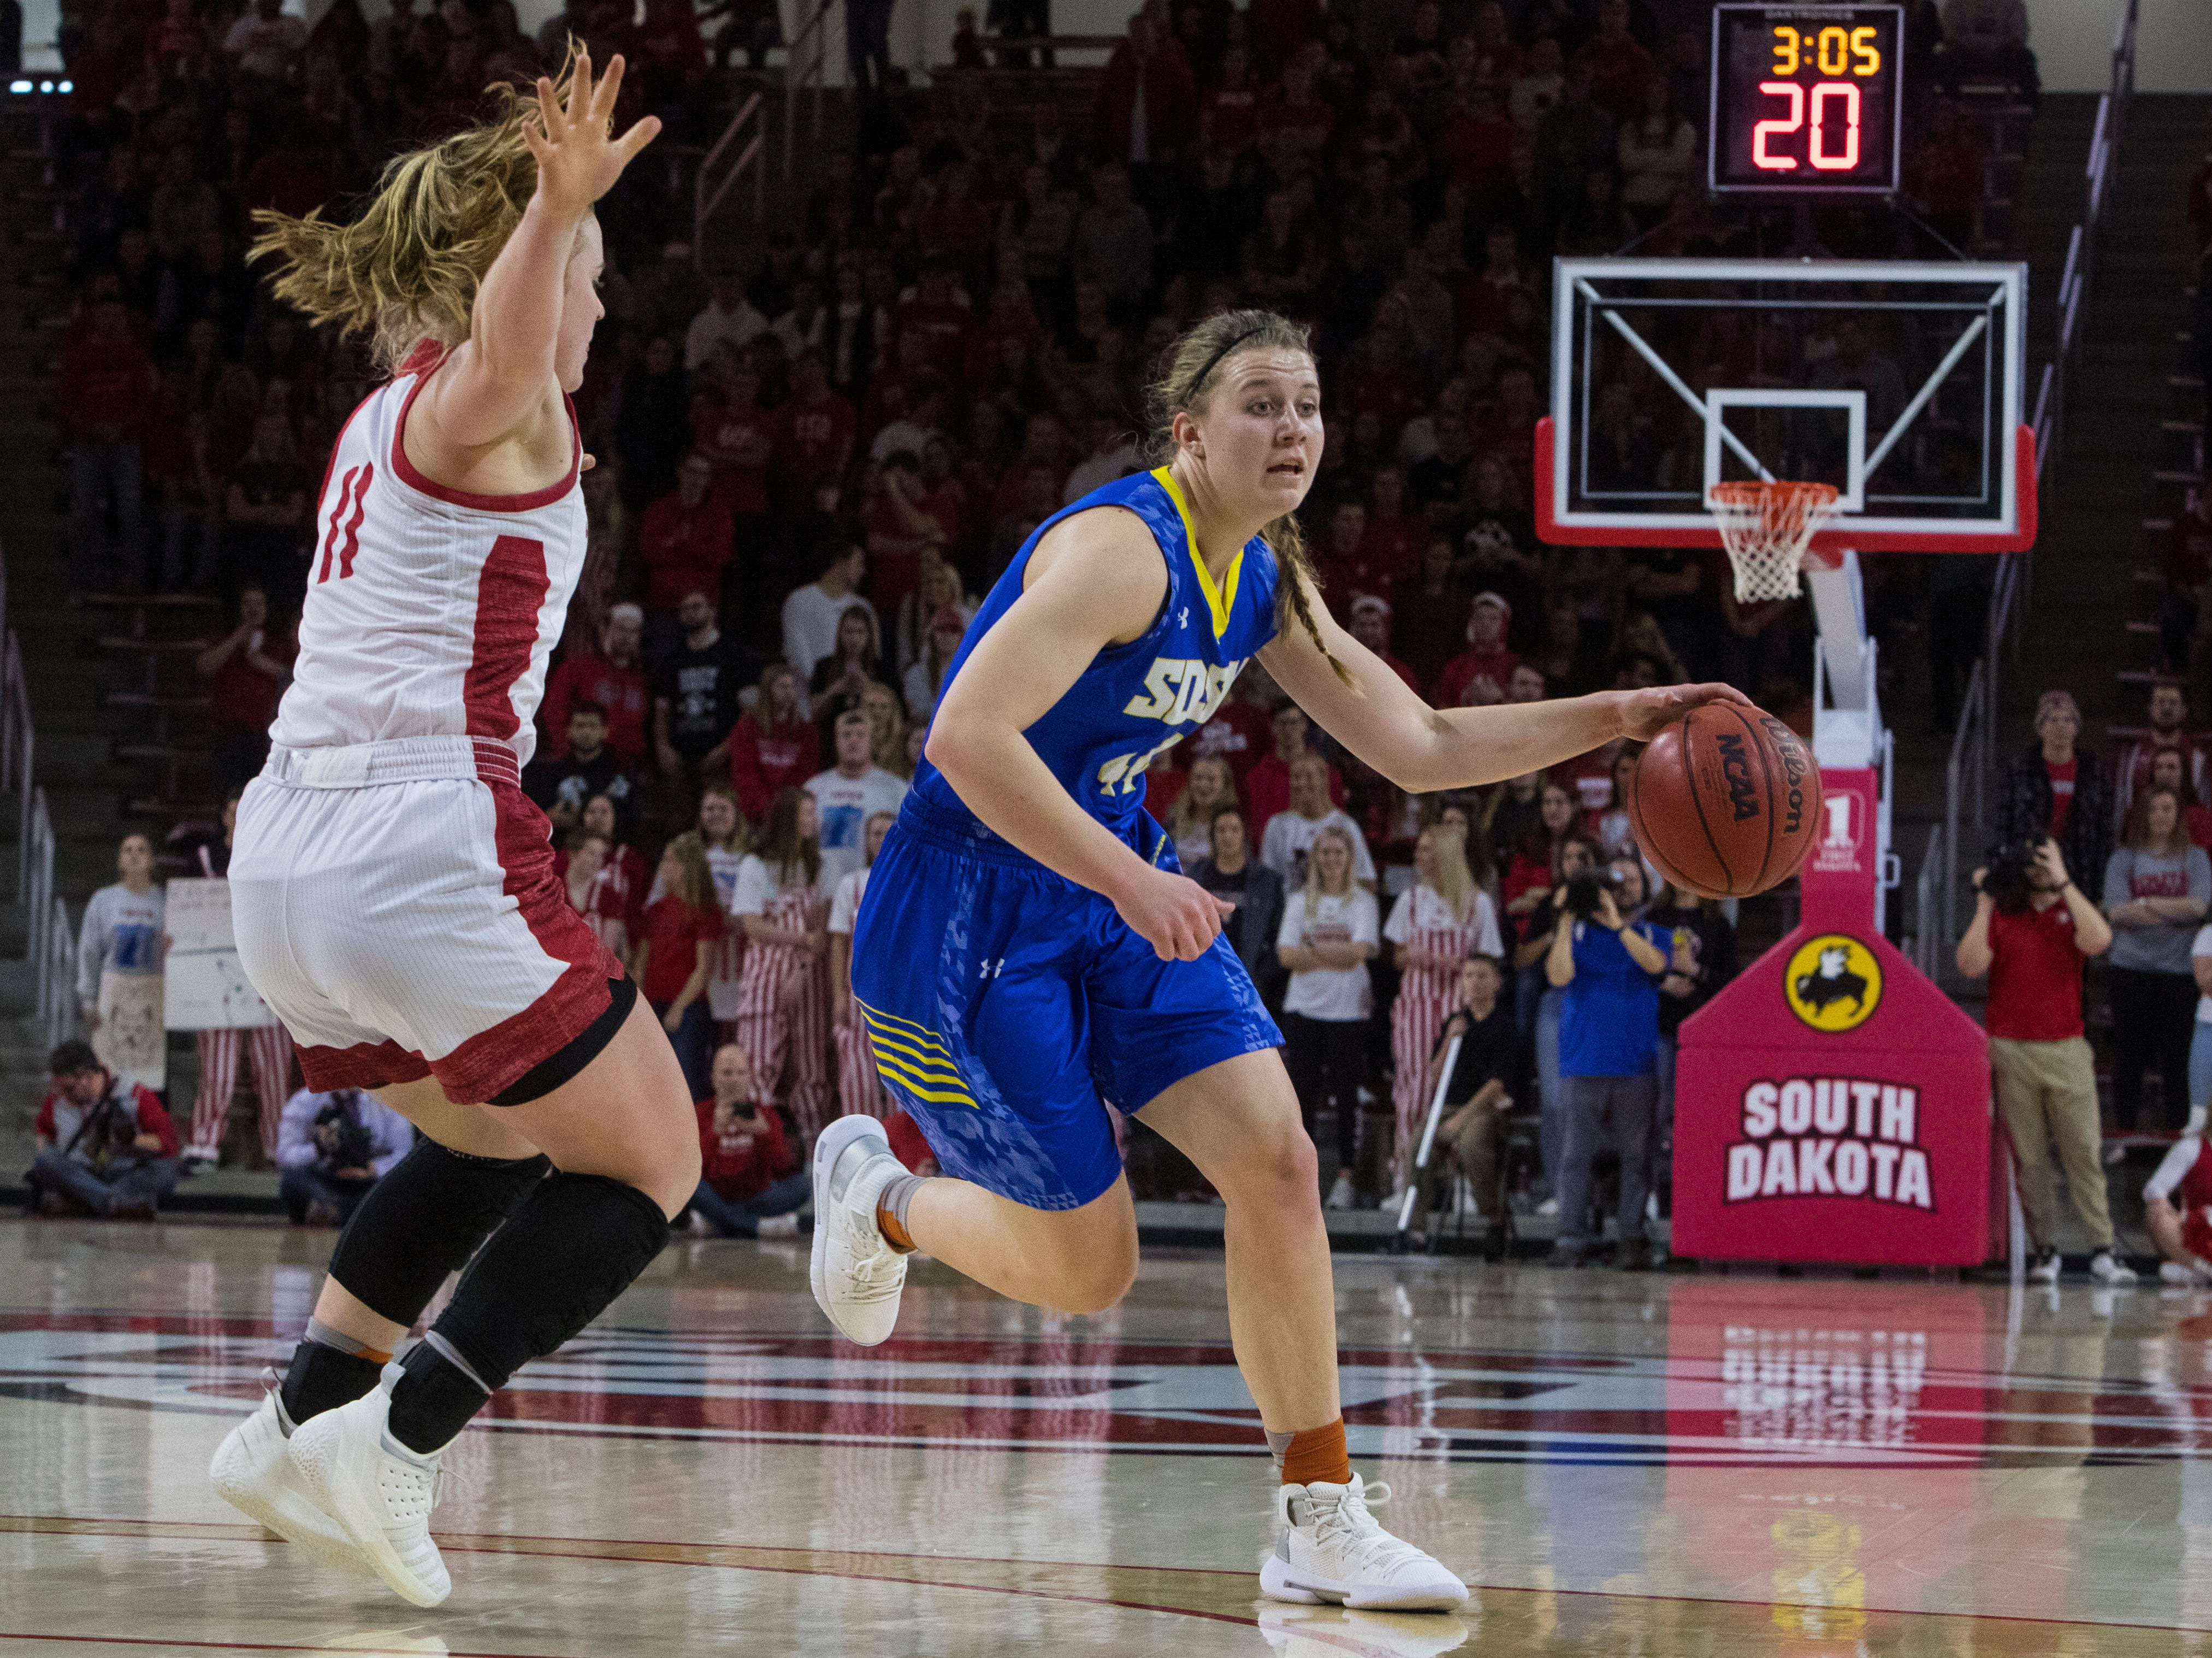 SDSU's Myah Selland (44) dribbles the ball past USD's Monica  Arens (11) during a game, Sunday, Jan. 6, 2019 in Vermillion, S.D.